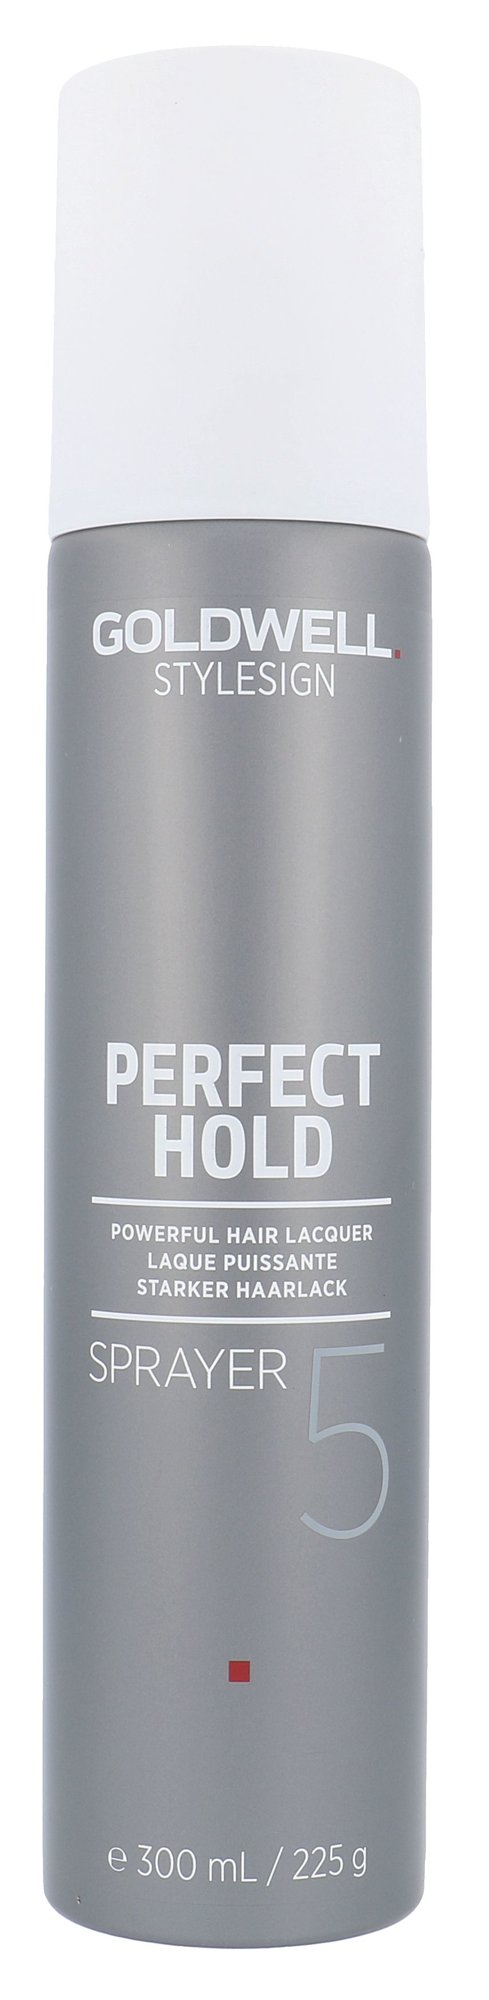 Goldwell Style Sign Perfect Hold Sprayer Cosmetic 300ml